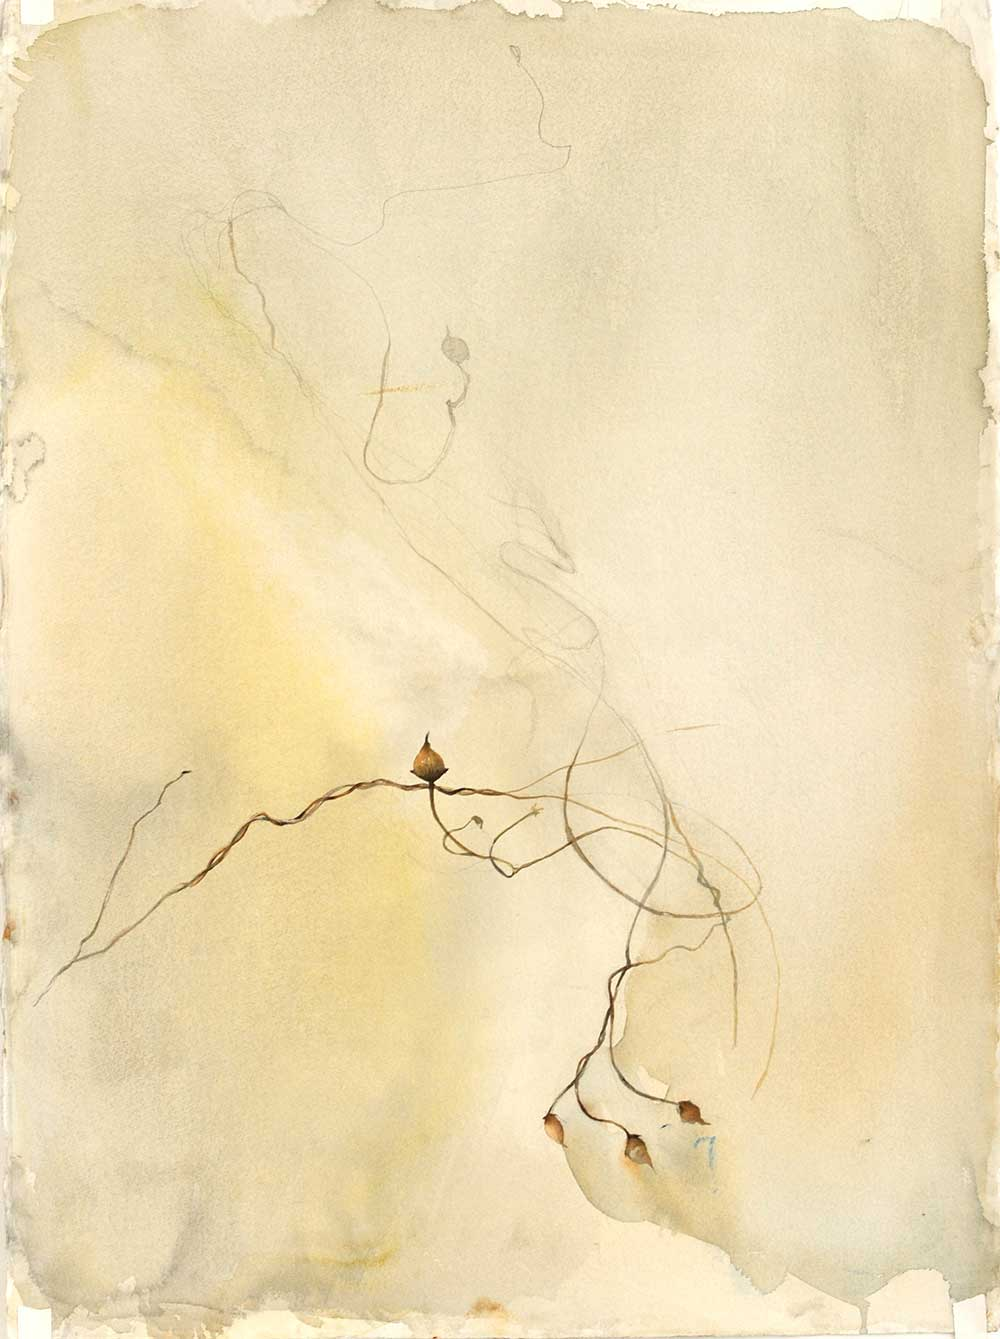 Fall, weeds, earth tones, watercolor painting, Coco Connolly, artist